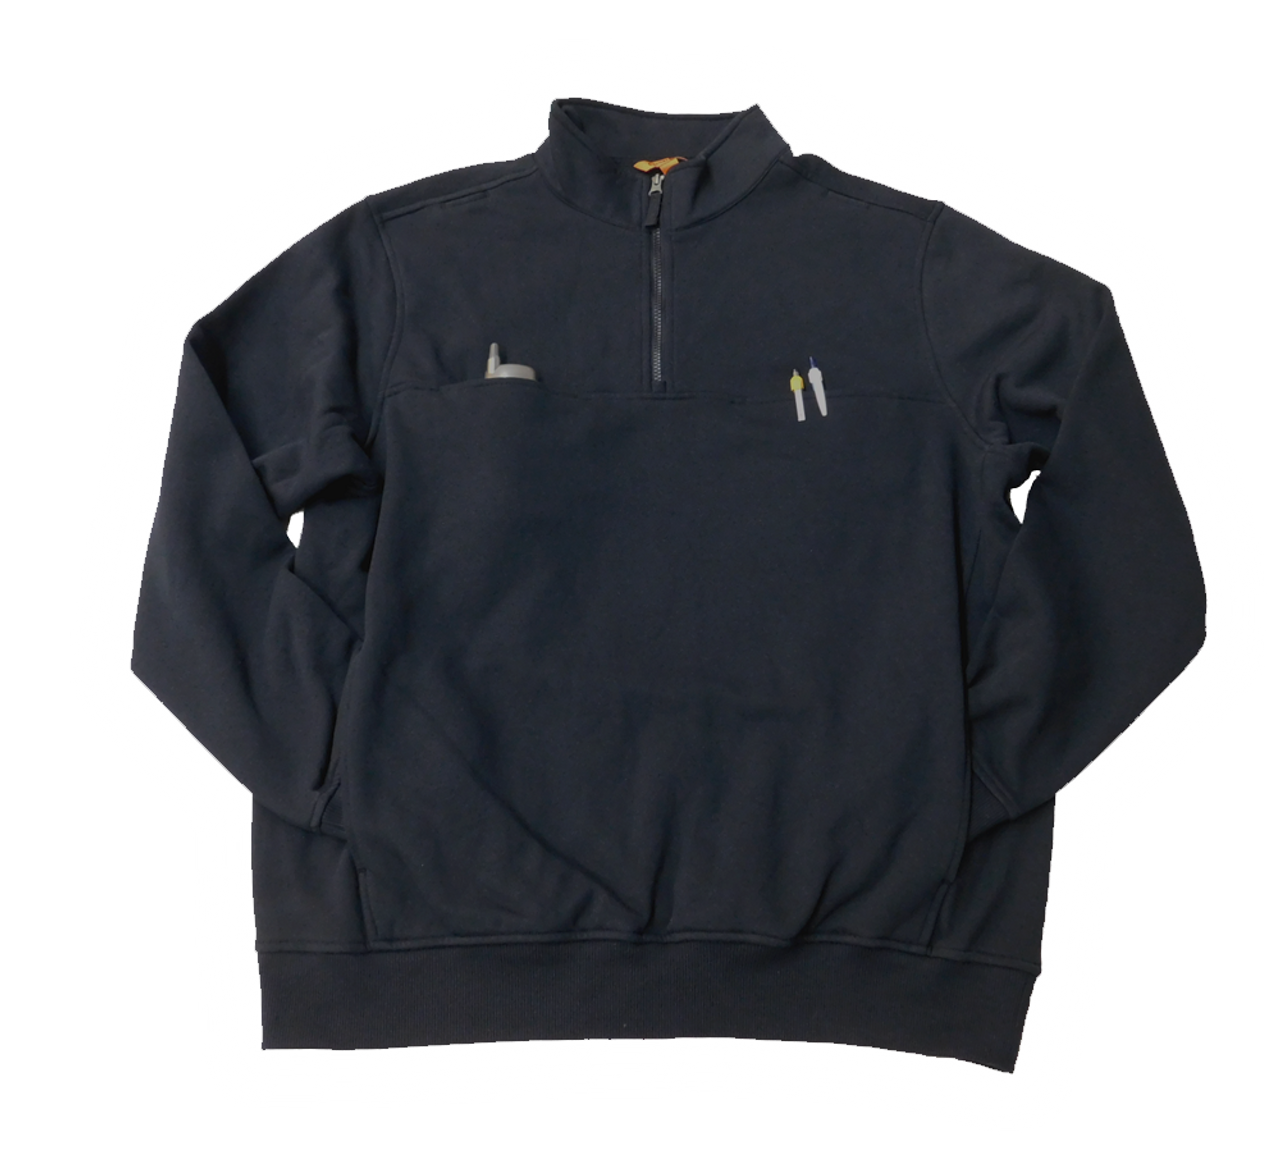 Pocket View of Dark Navy CS410 - Includes two side pockets, two chest pockets, and mic clip